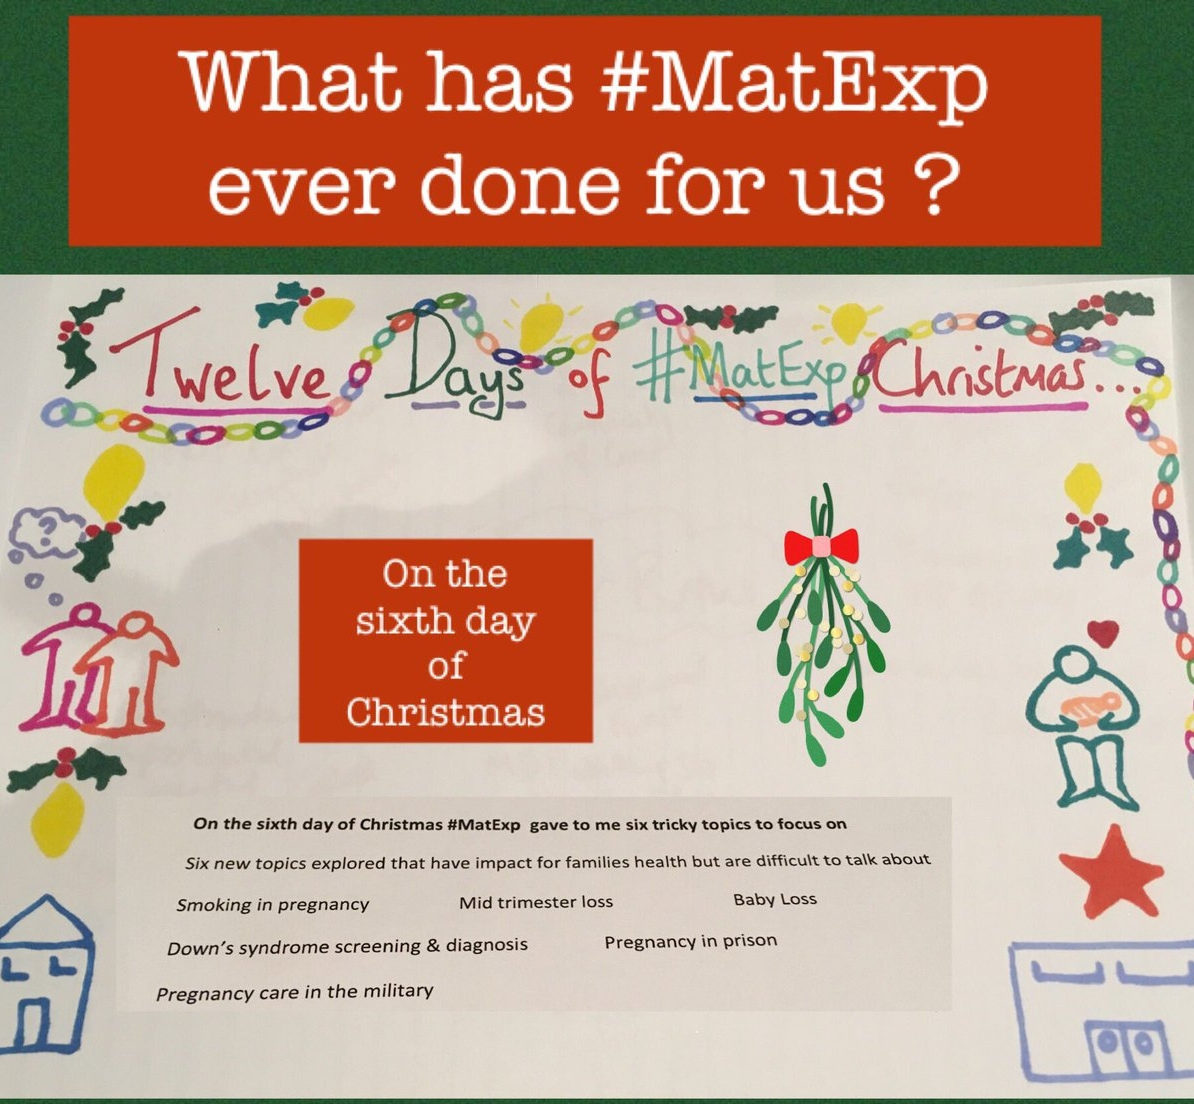 MatExp 12 days of Christmas Day 6